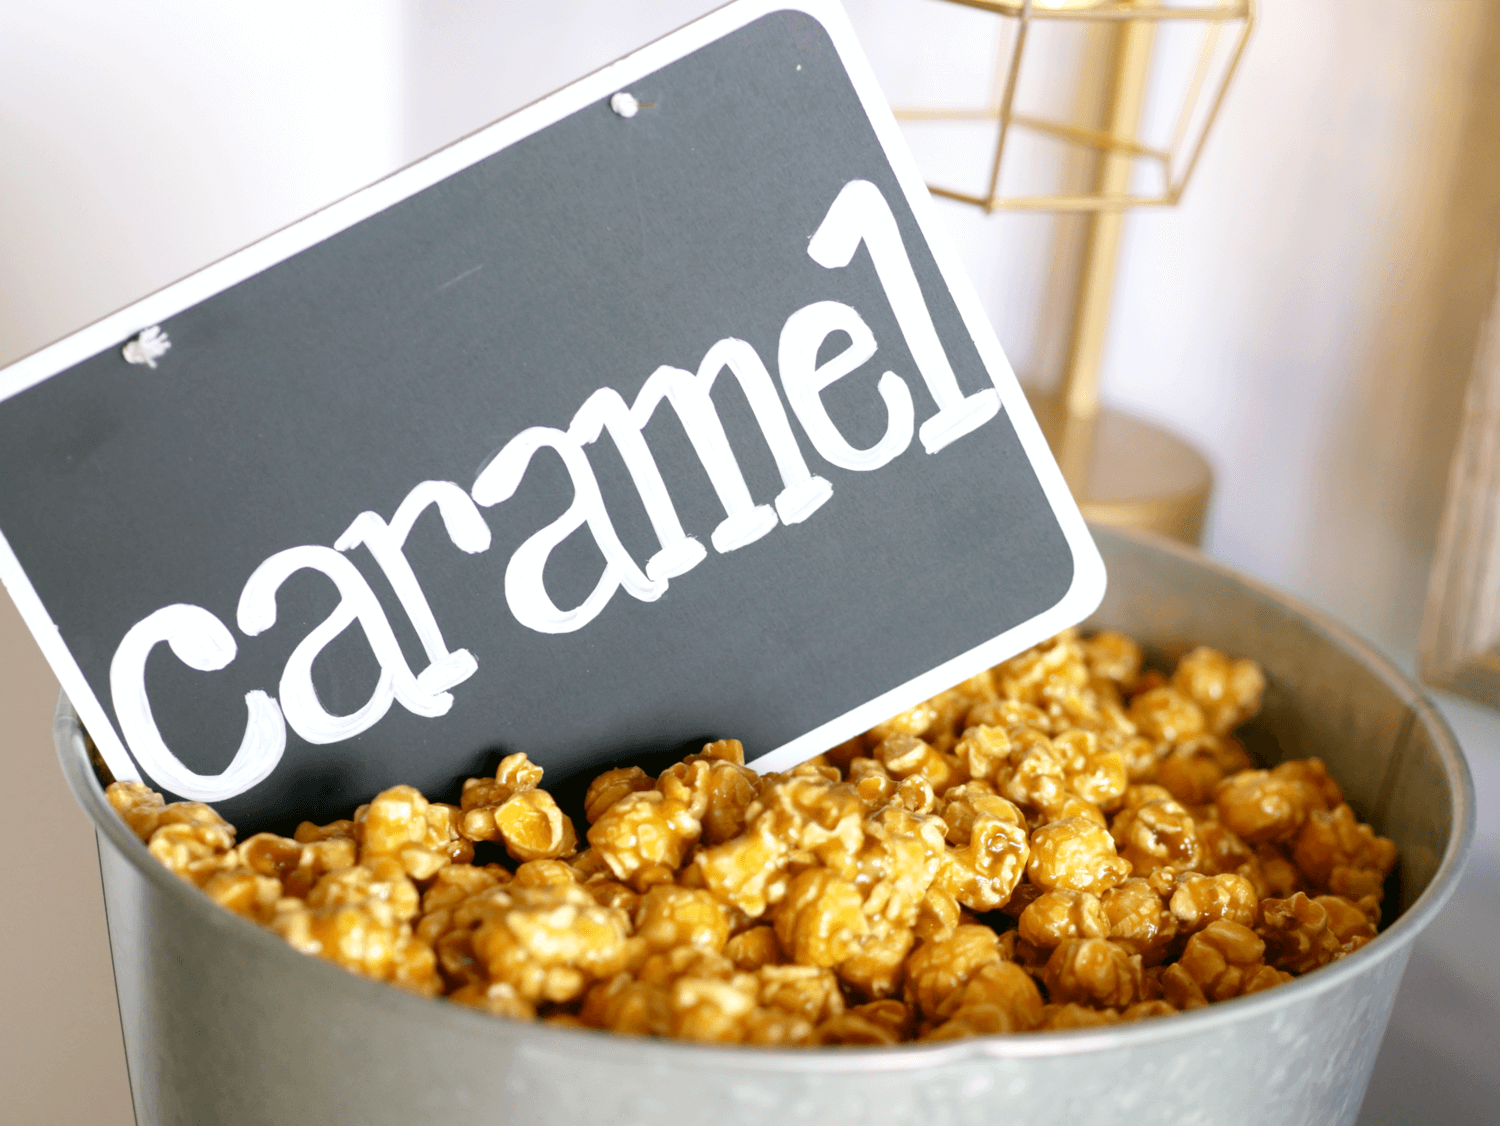 Popcorn bar idea / Popcorn sign idea / Caramel Popcorn / Popcorn Chalkboard signs / Styled by Carolina from MINT Event design / www.minteventdesign.com